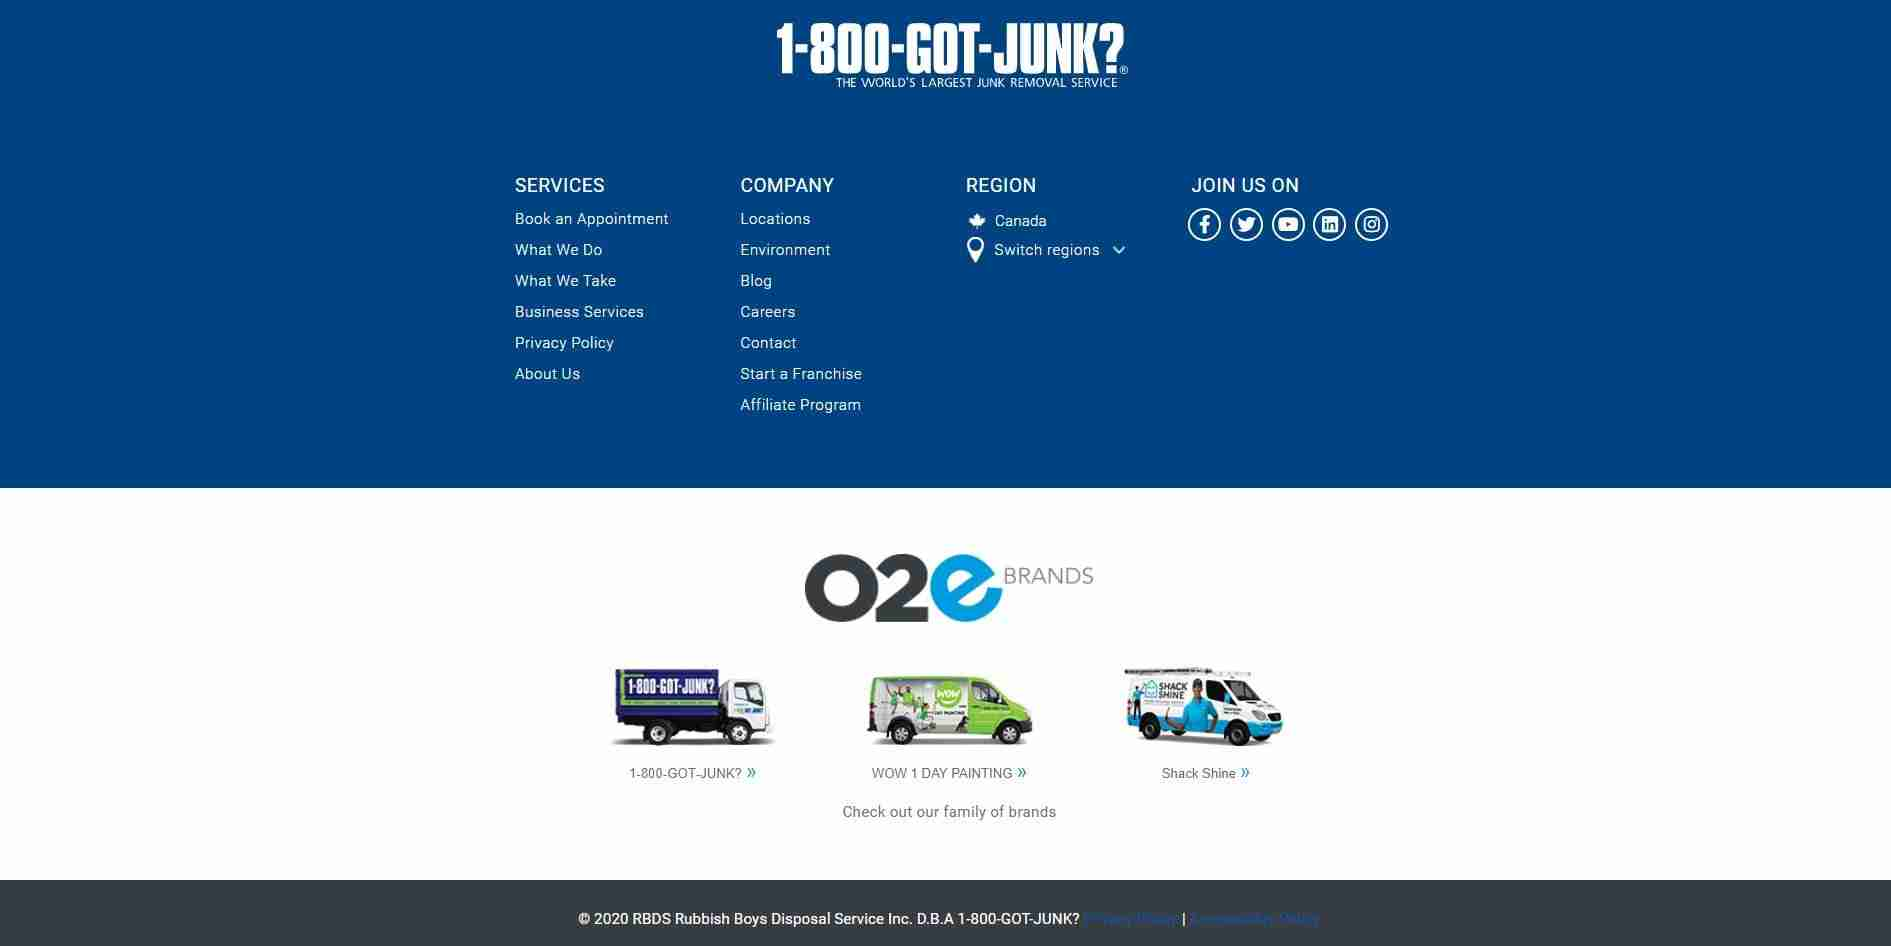 1-800-Got-Junk's? Customer Support Service Page